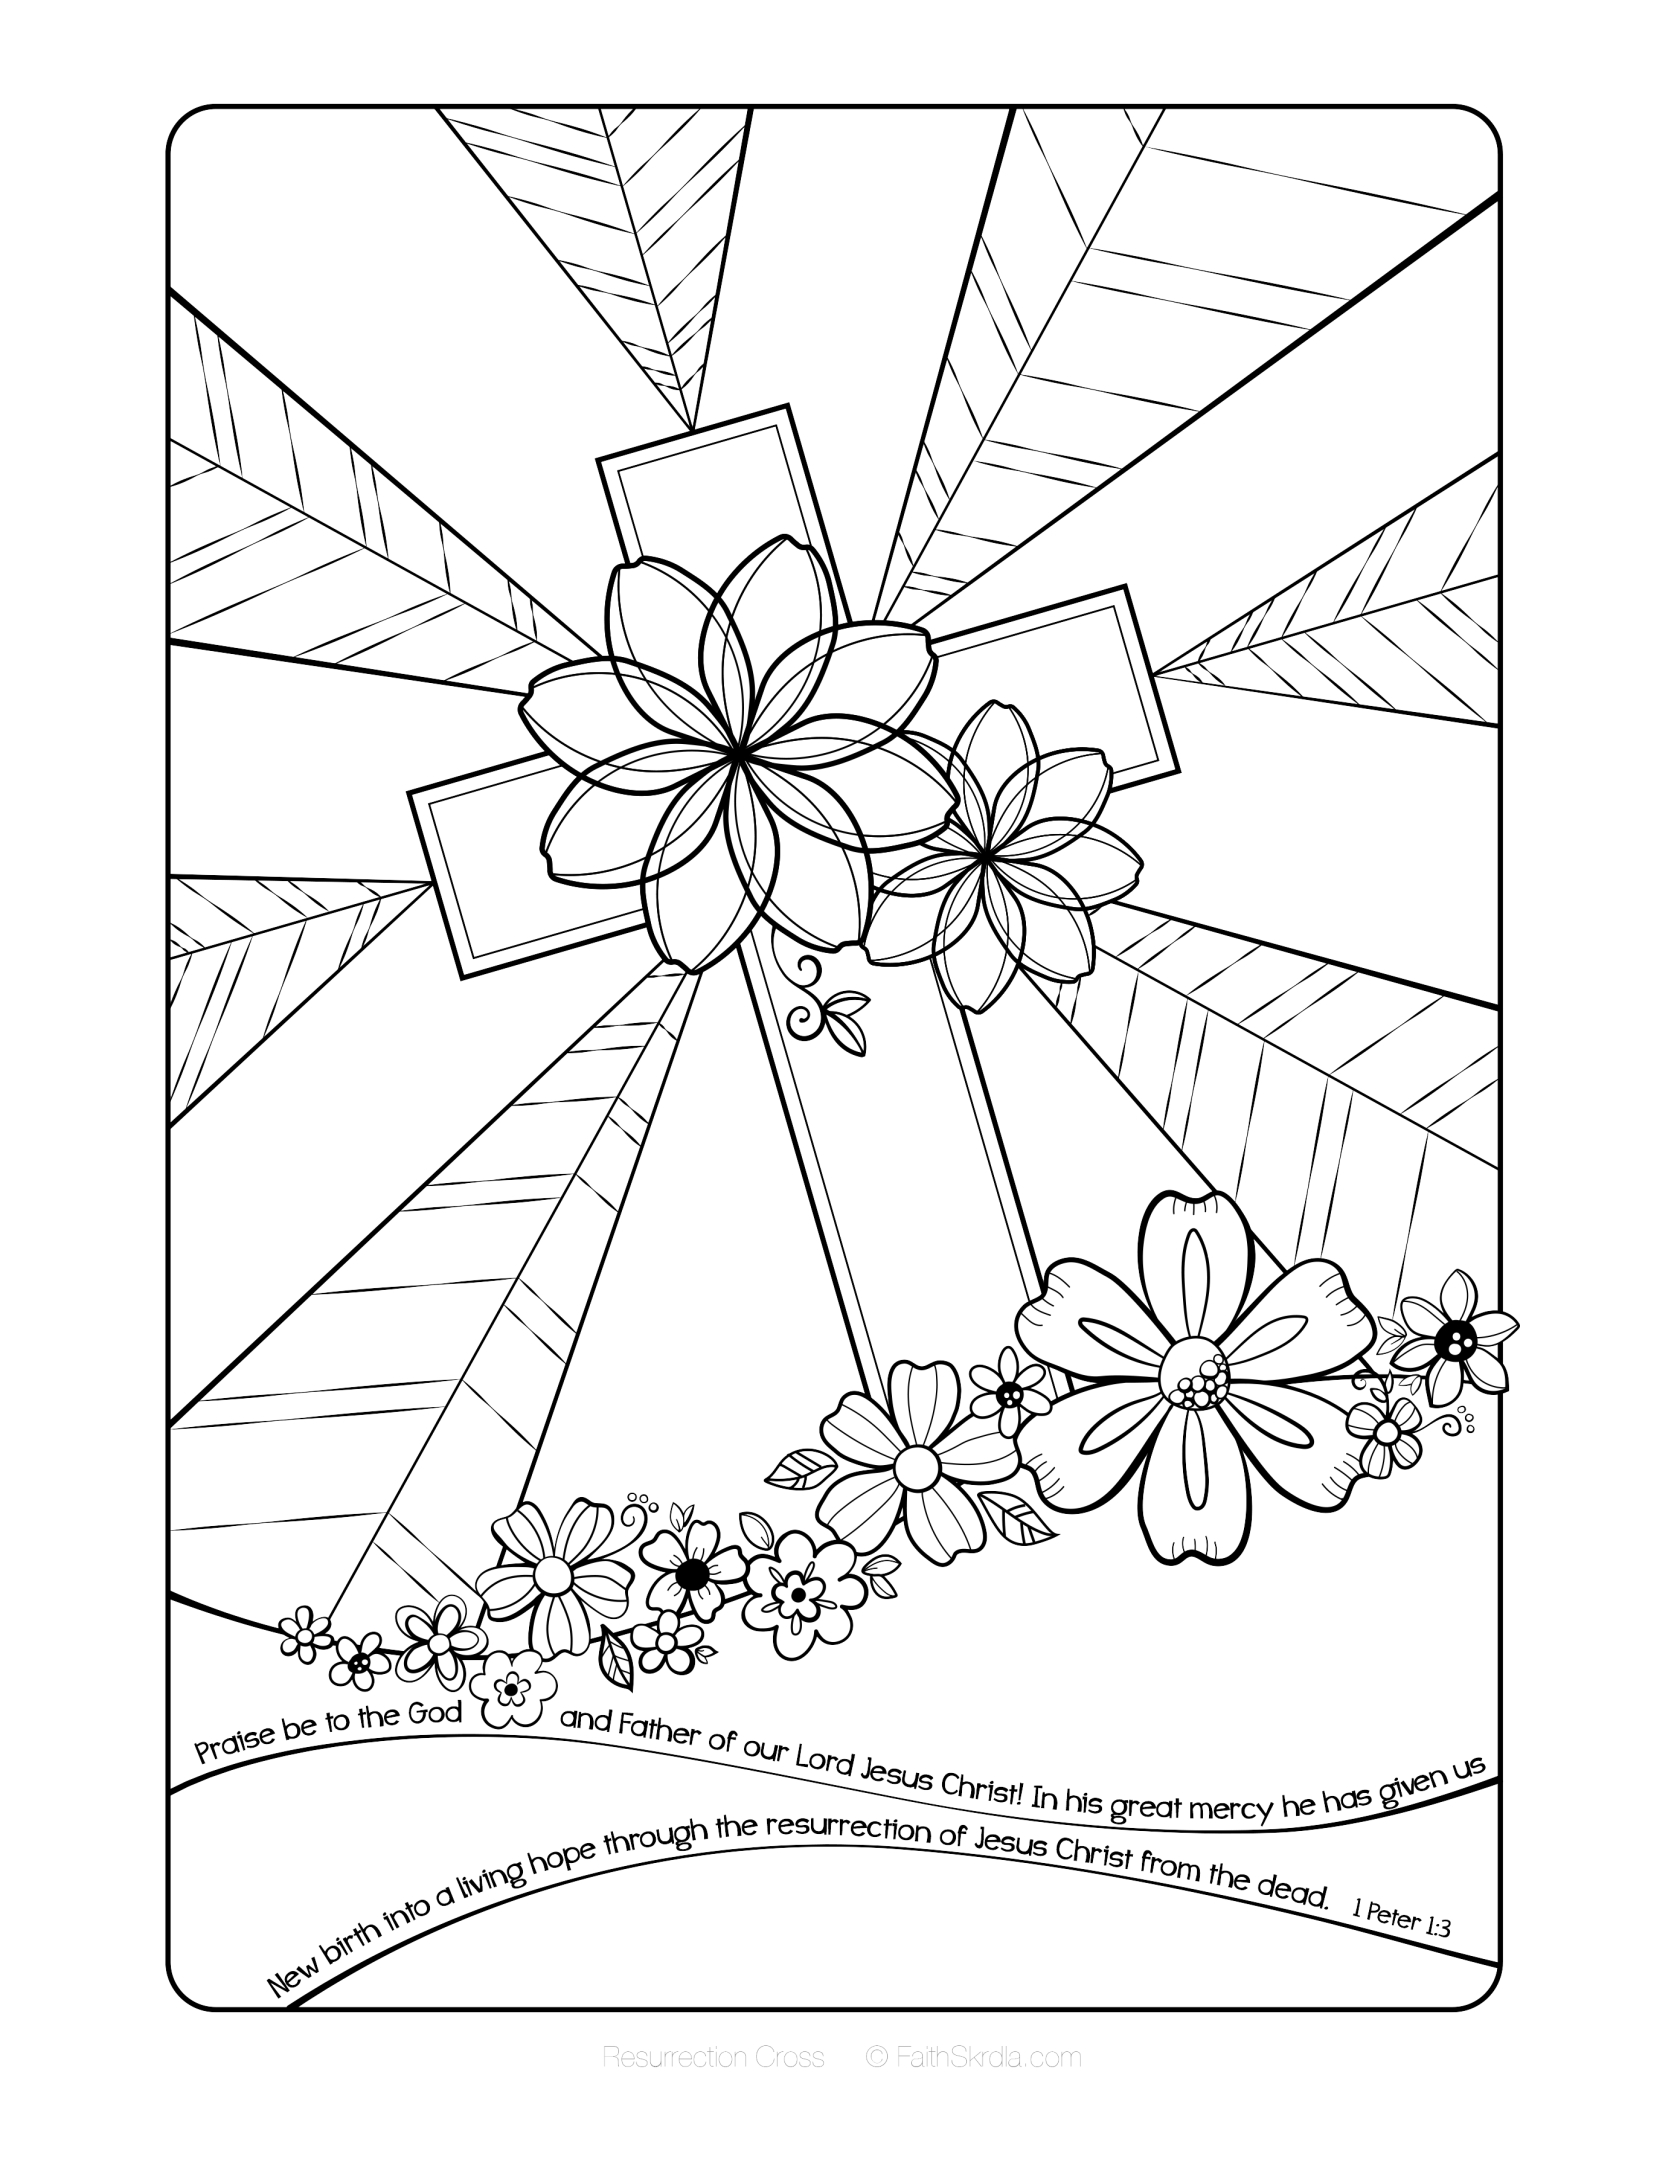 easter coloring pages activities Collection-Free Easter Adult Coloring Page by Faith Skrdla Resurrection Cross 1 Peter 1 3 Bible Verse Christian coloring page for adults and grown up kids 4-a